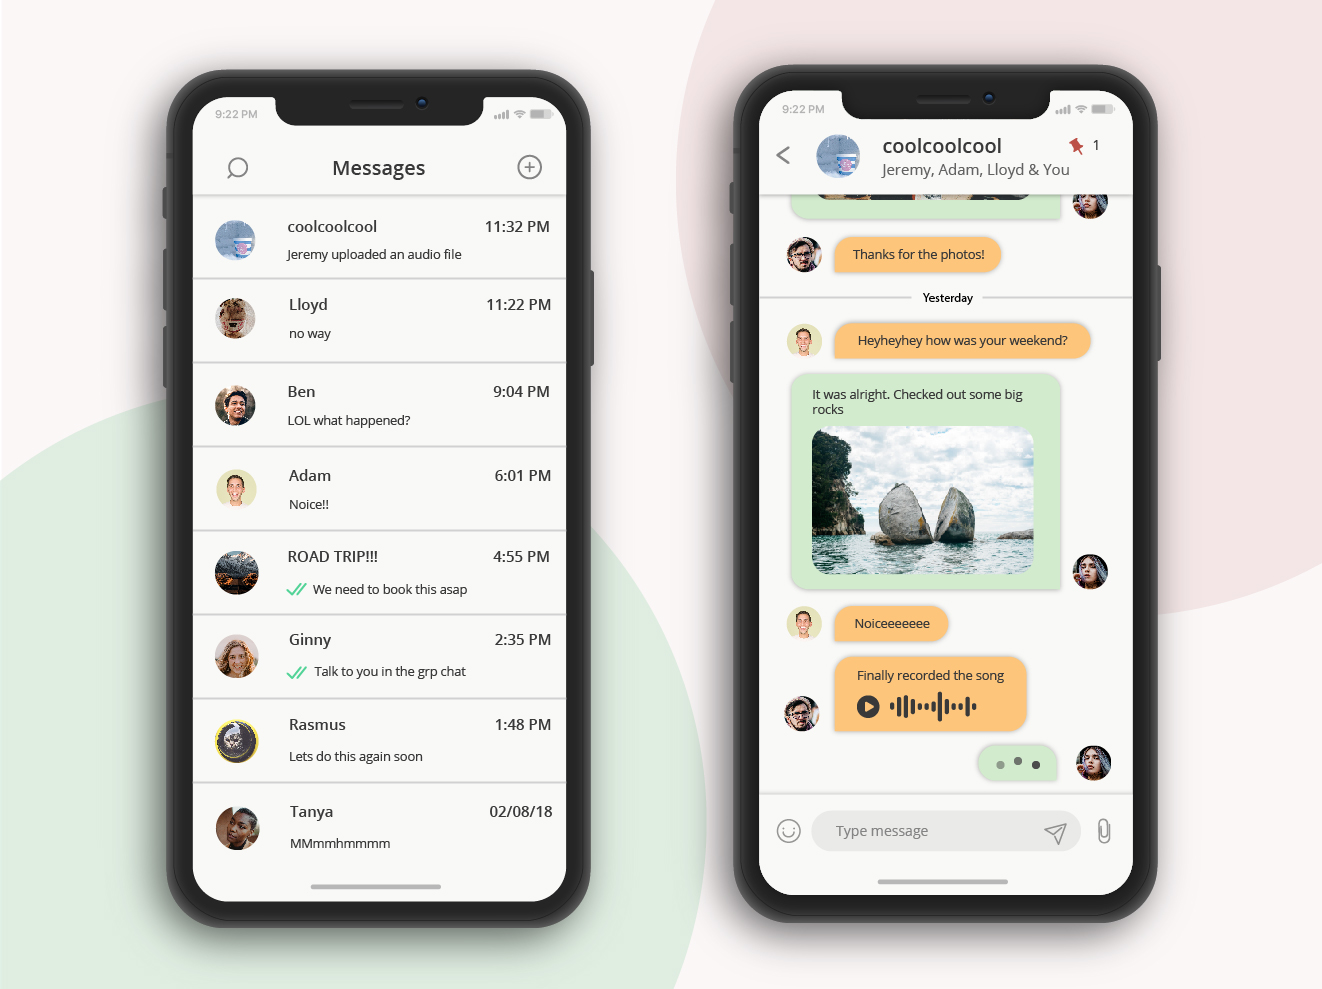 Direct messaging chat UI for a mobile application